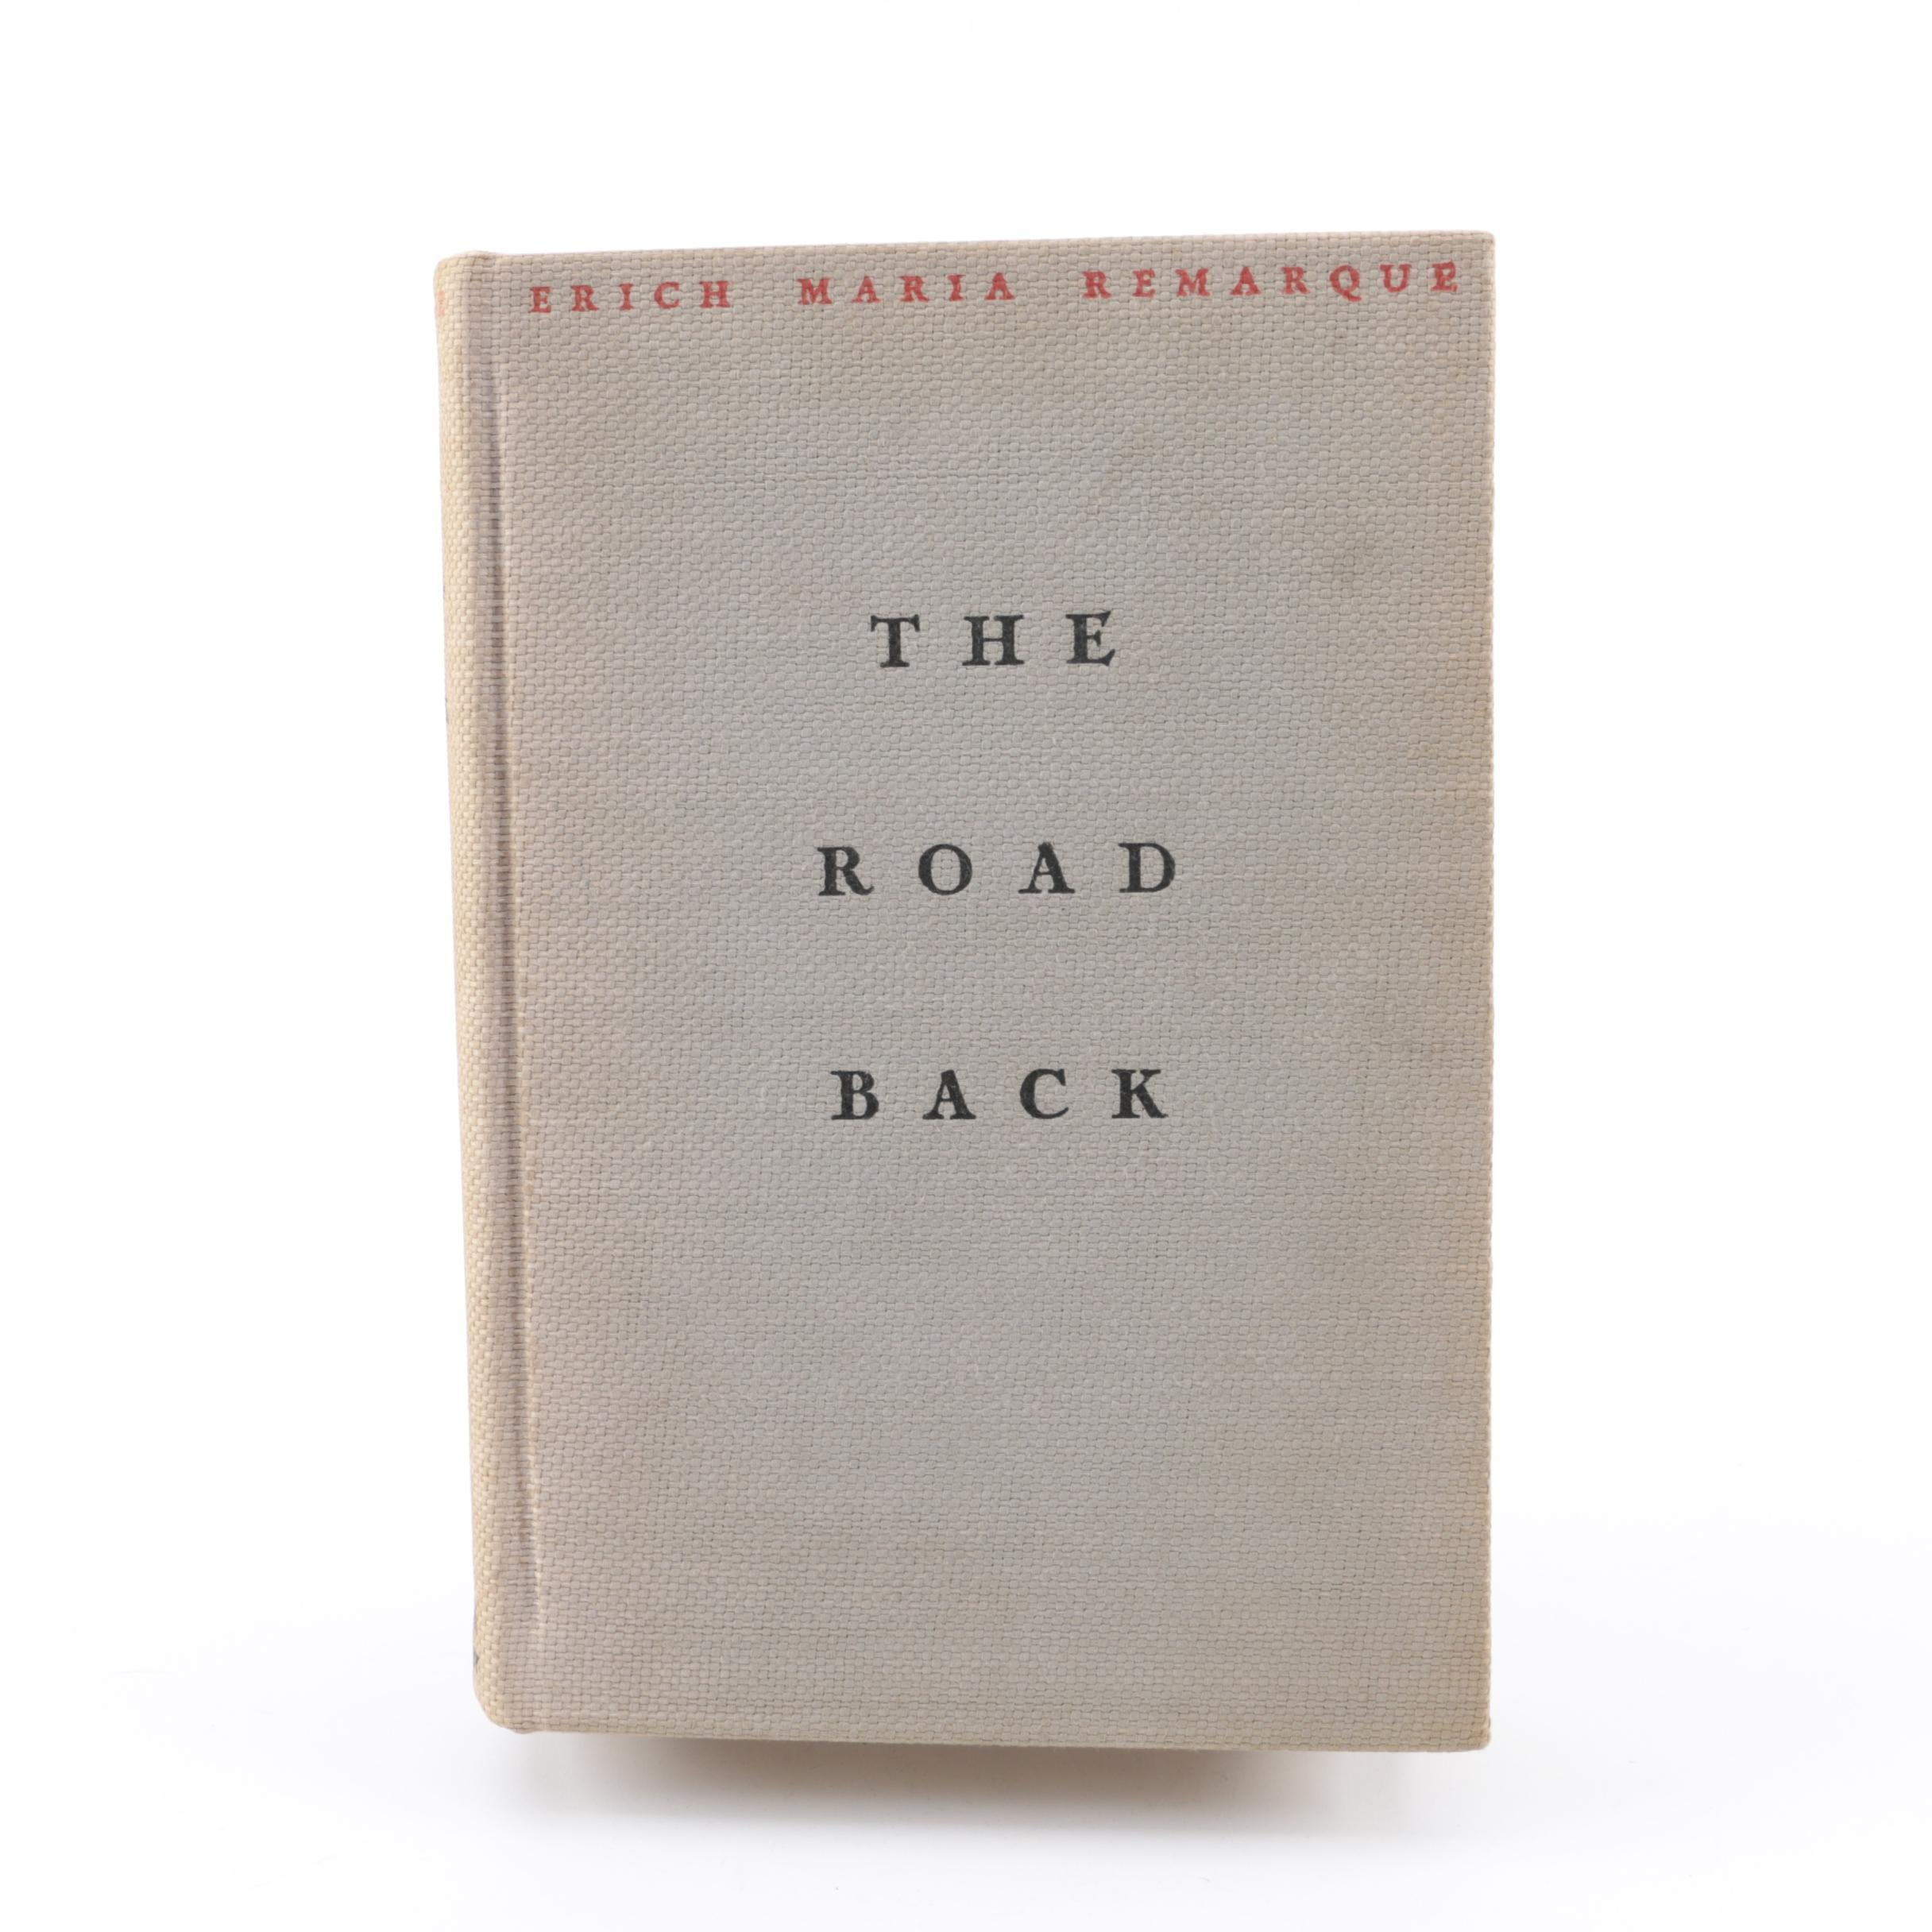 "1931 First American Edition ""The Road Back"" by Erich Maria Remarque"